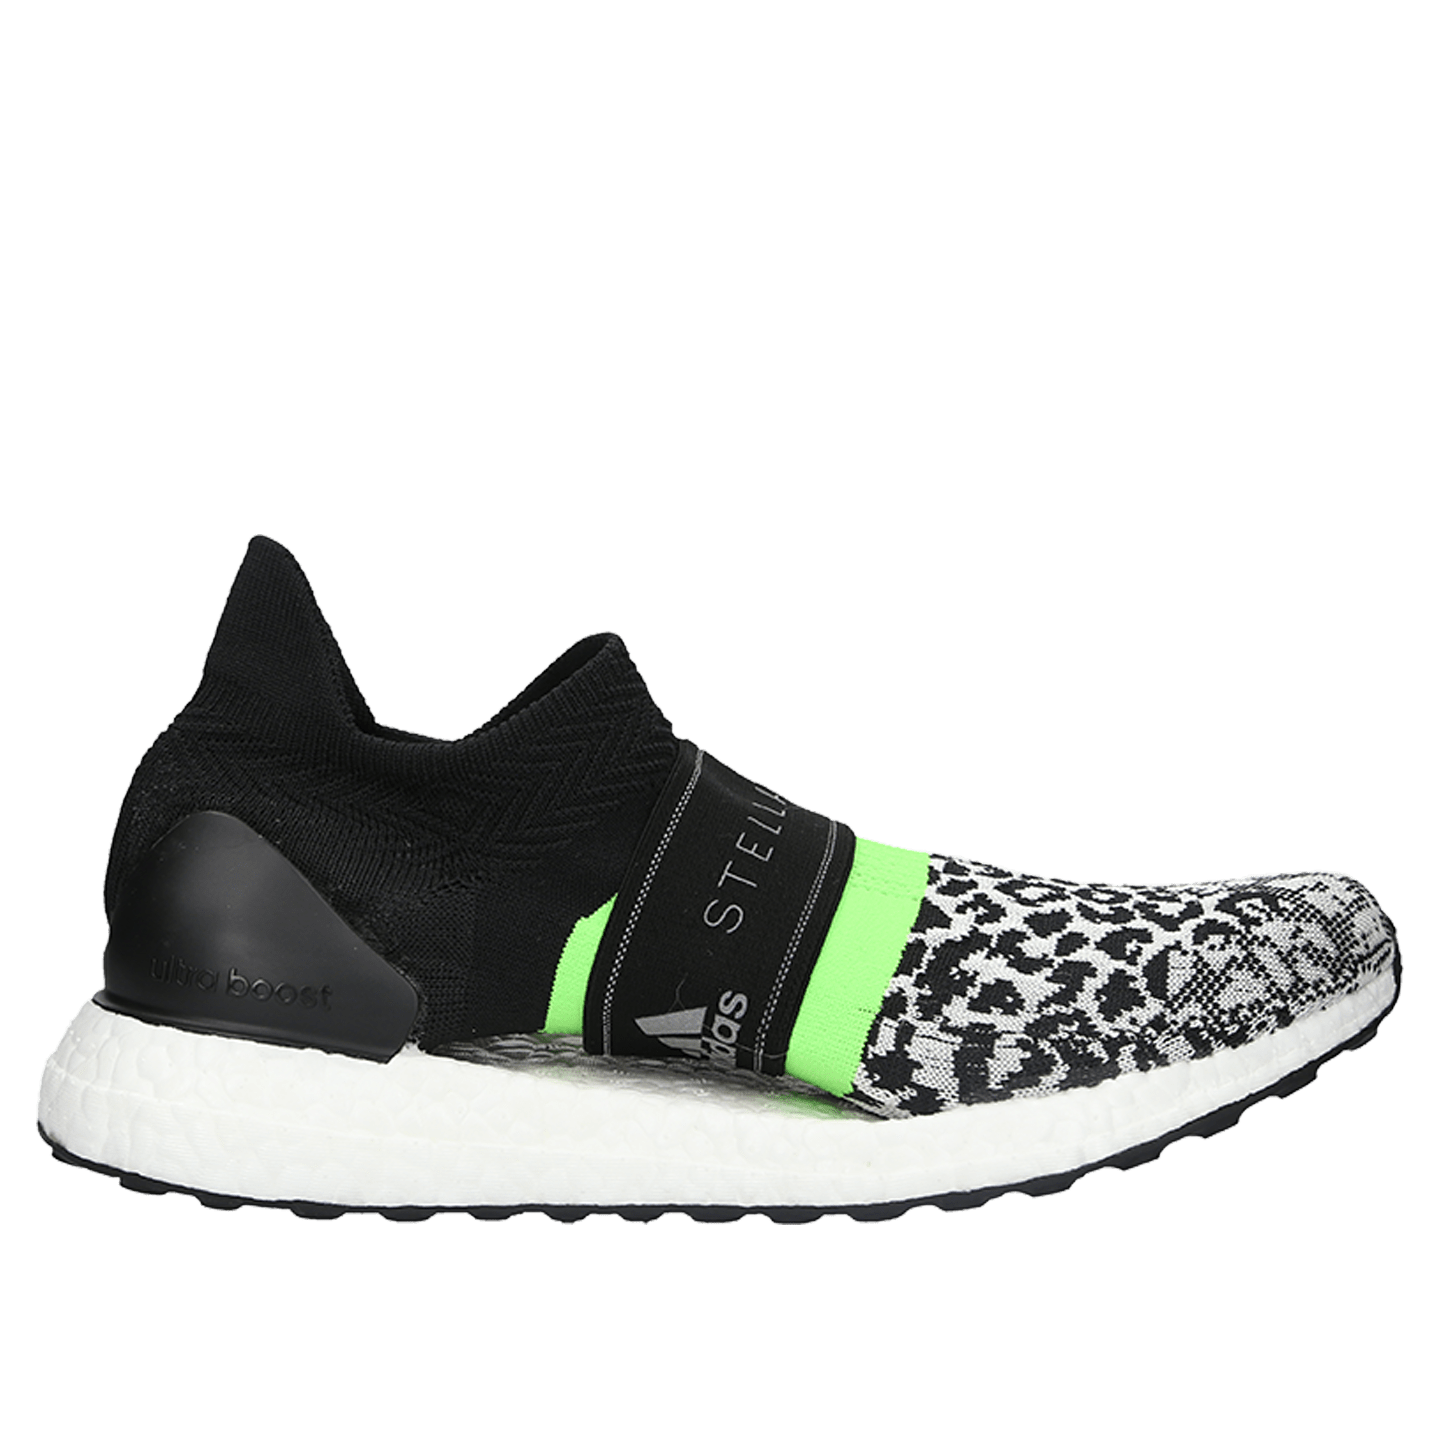 adidas Stella McCartney UltraBOOST X Core Black AQ0796